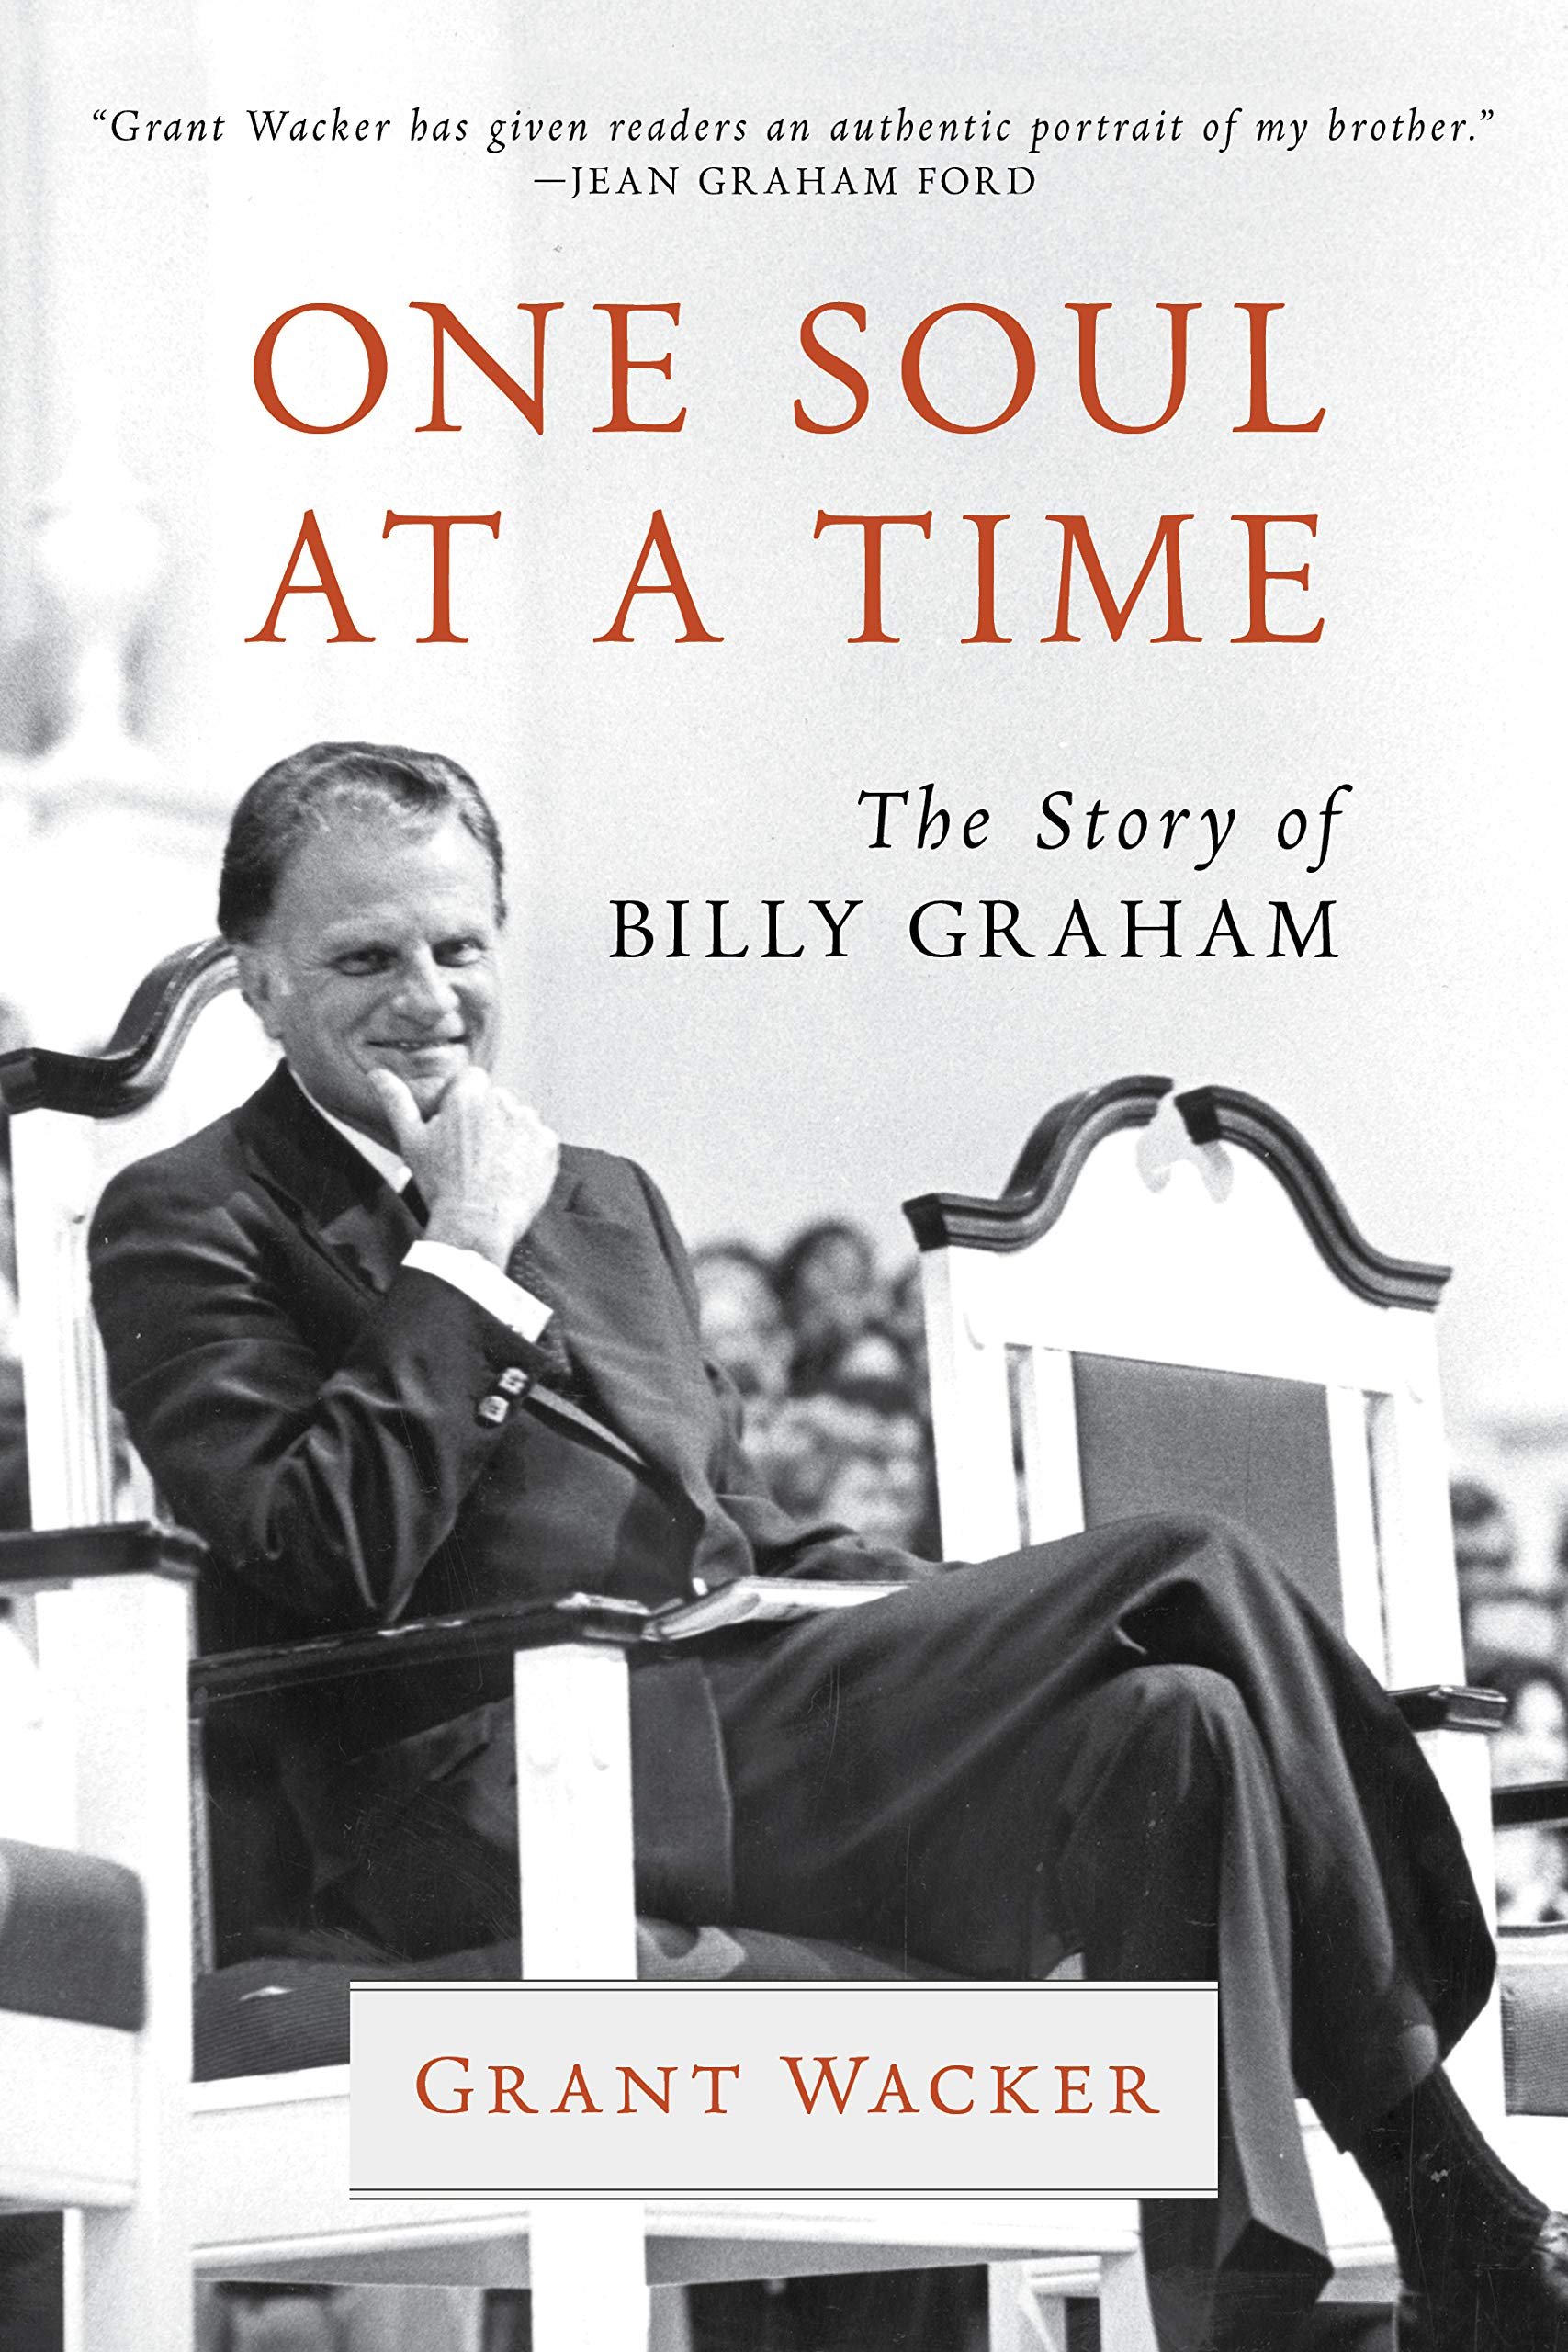 One Soul at a Time: The Story of Billy Graham (Library of Religious  Biography (LRB)): Wacker, Grant: 9780802874726: Amazon.com: Books